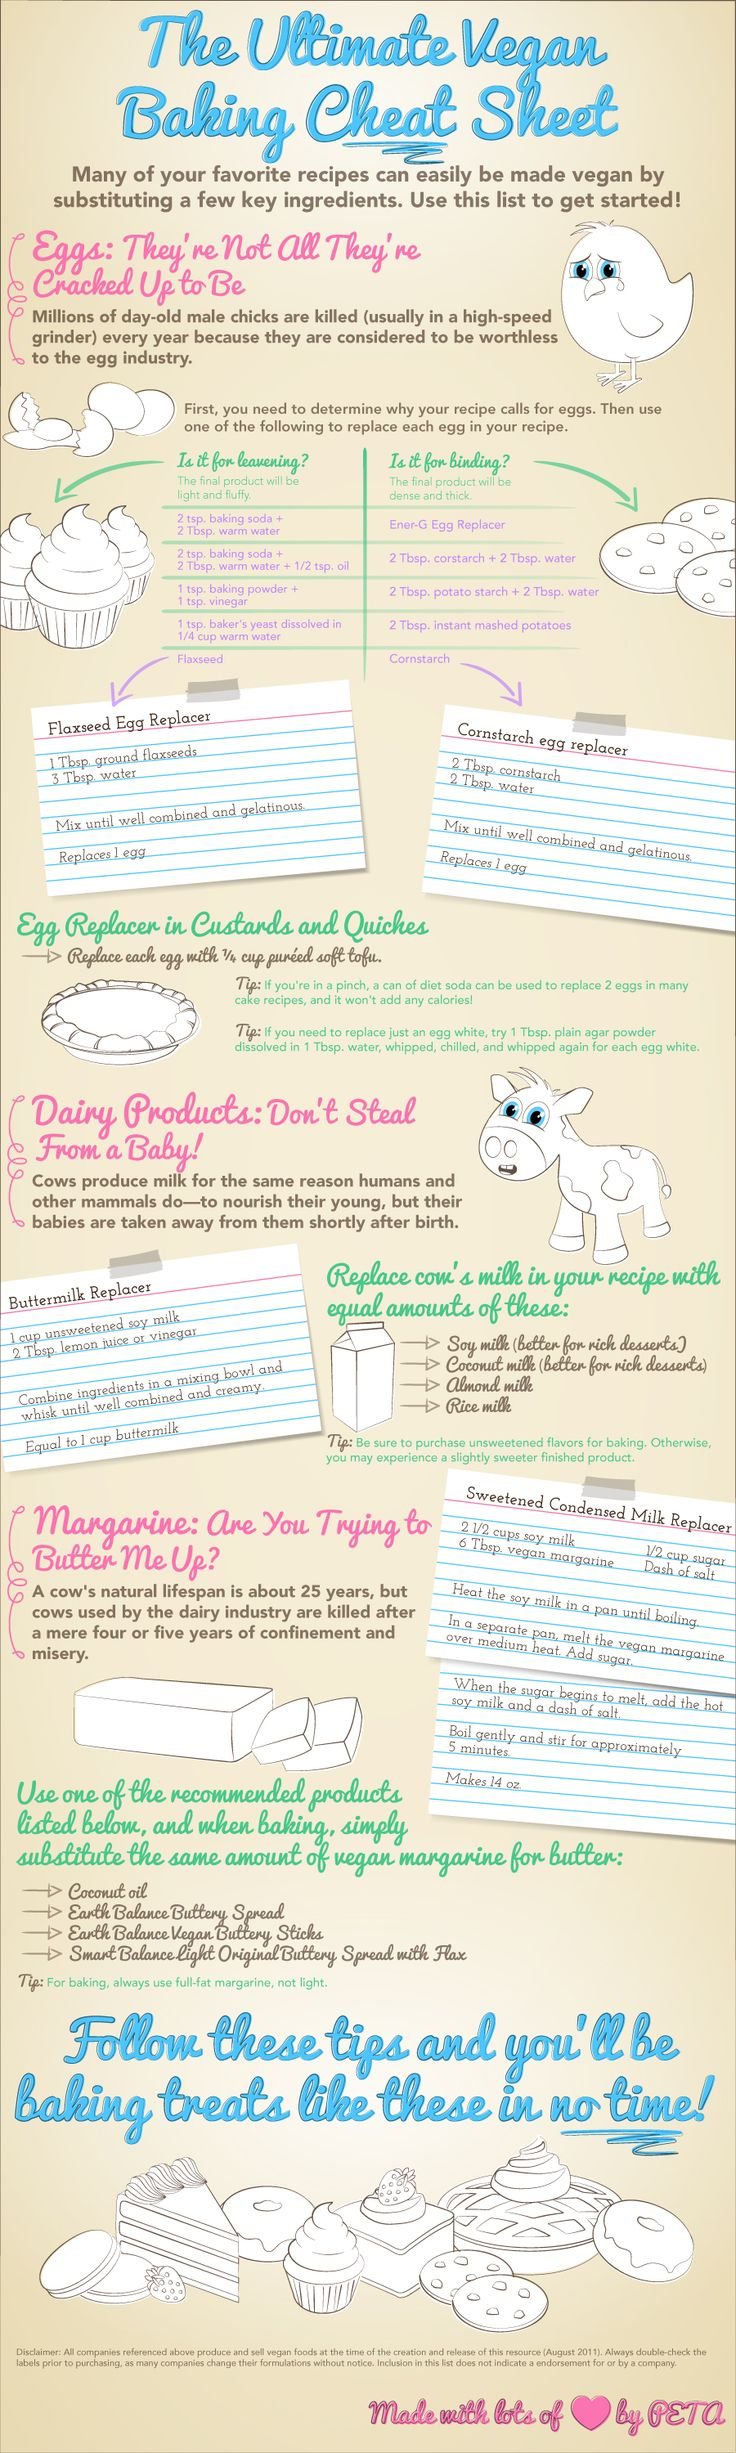 """The Ultimate Vegan Baking Cheat Sheet"". This is definitely my favourite , informative and simple vegan baking sheet. It's 'to the point' and is so useful! There is a printer friendly version here... Print it off and put it on the fridge!! You will soon be creating your own gourmet baking recipes!!!"